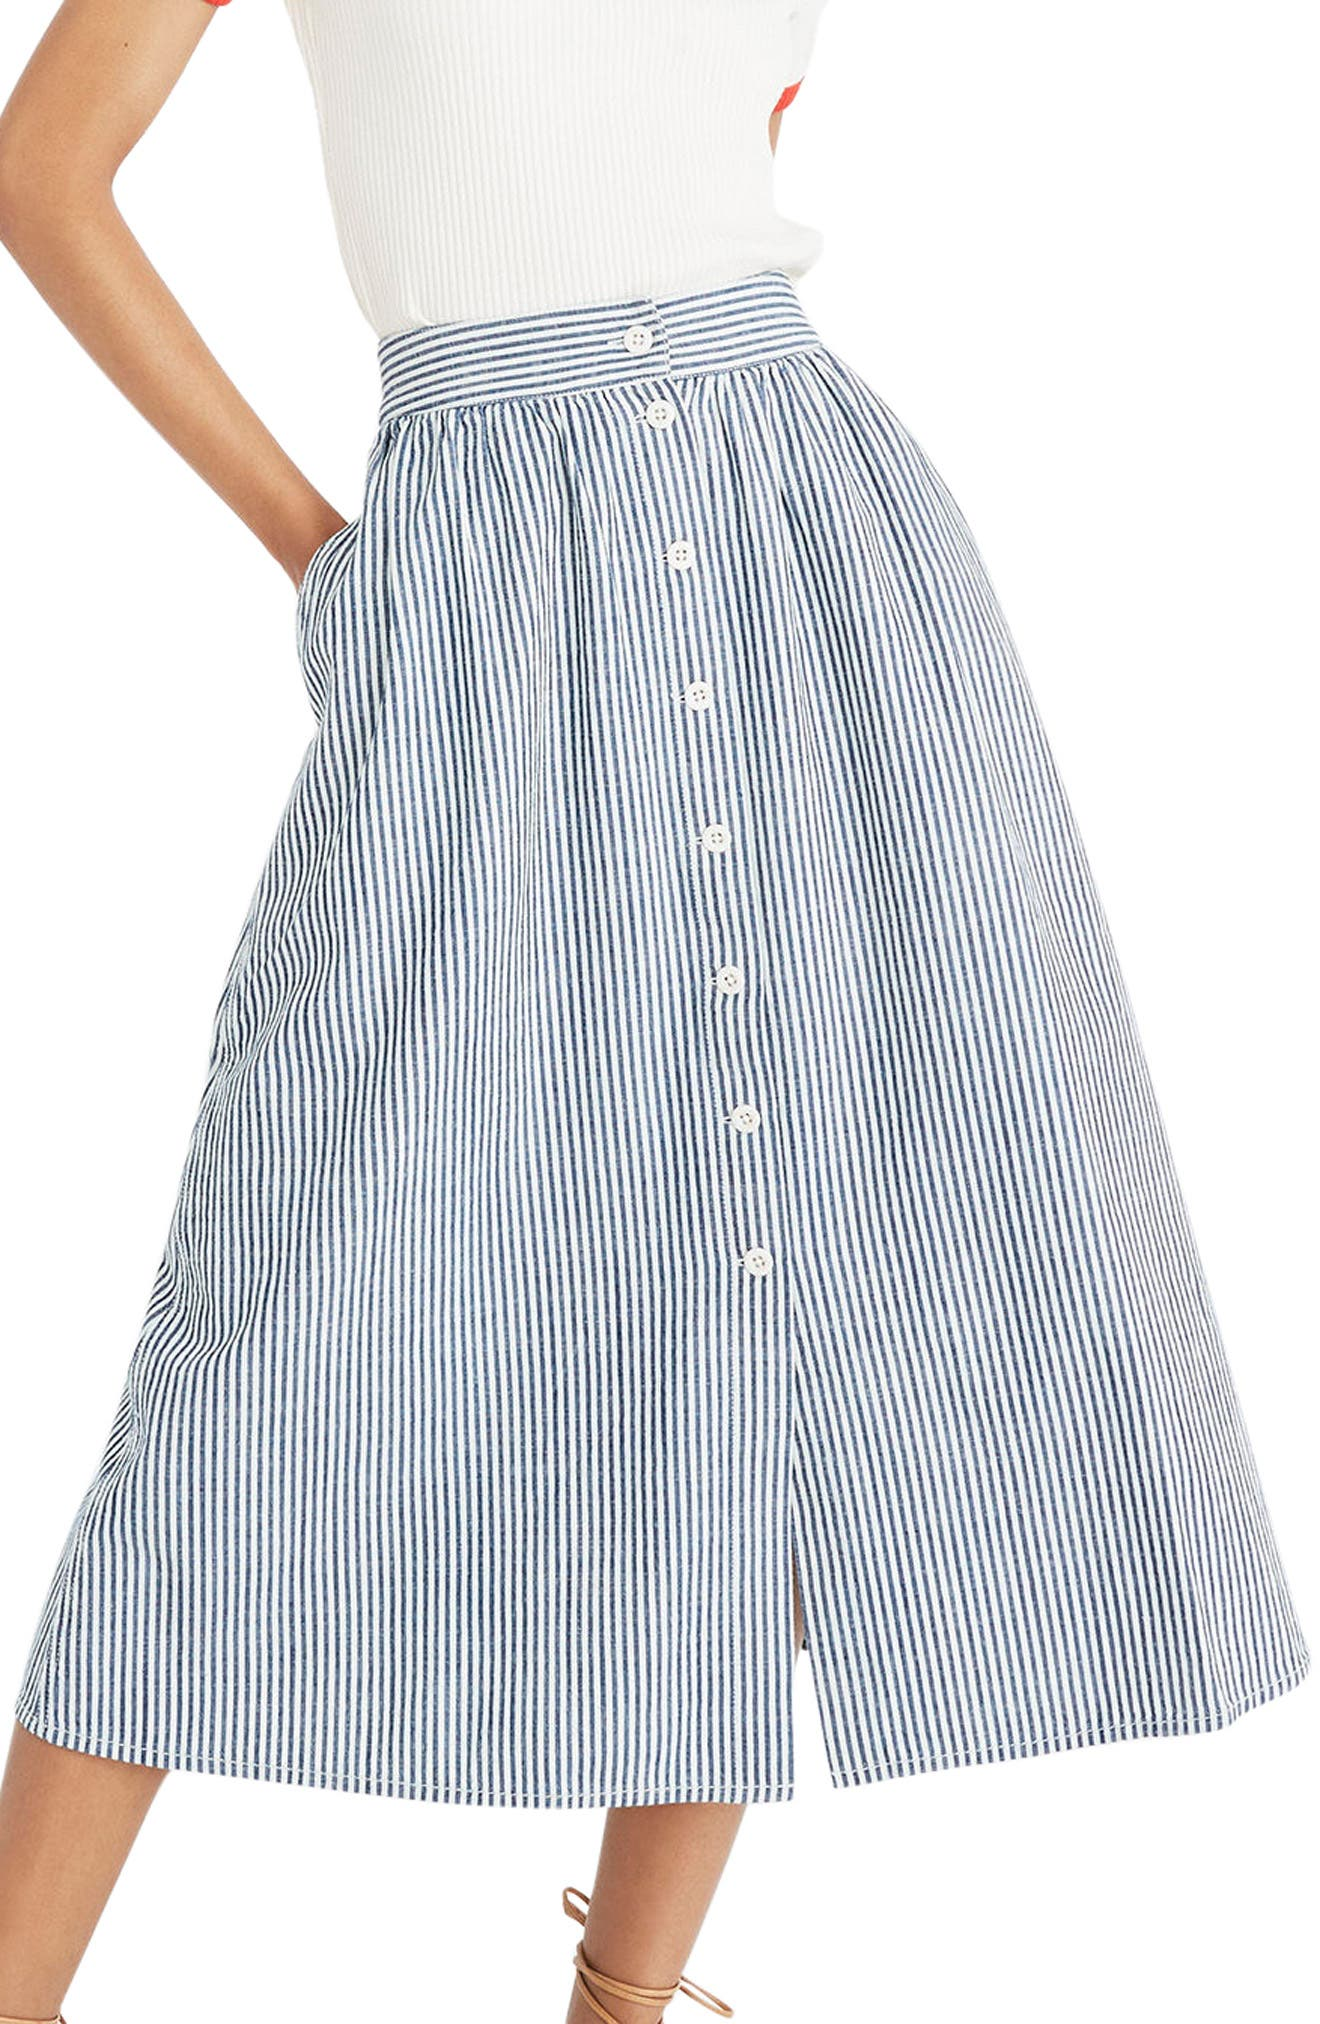 Palisade Chambray Stripe Button Front Midi Skirt,                         Main,                         color, 400